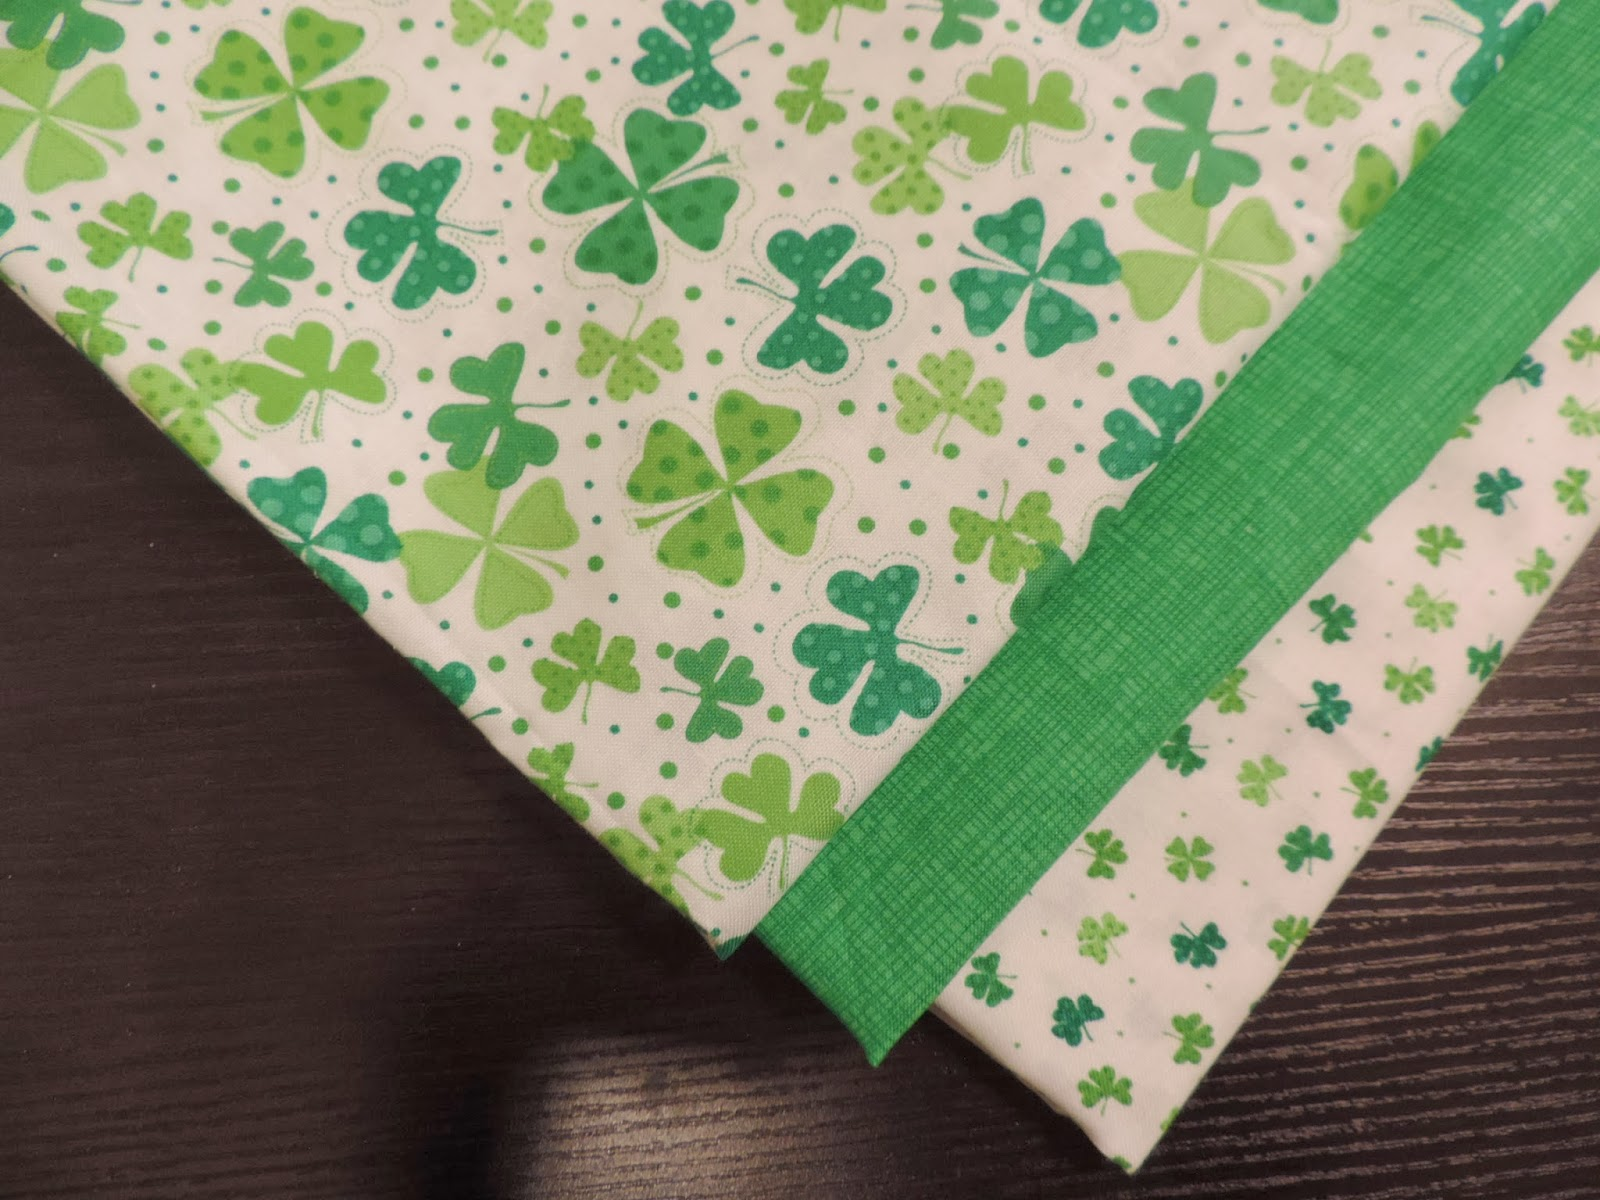 timeless treasures celebrating patrick day with sew much good accent your focus table runner pattern the greatest part this apron giant ric rac made easy iron fusible you have not